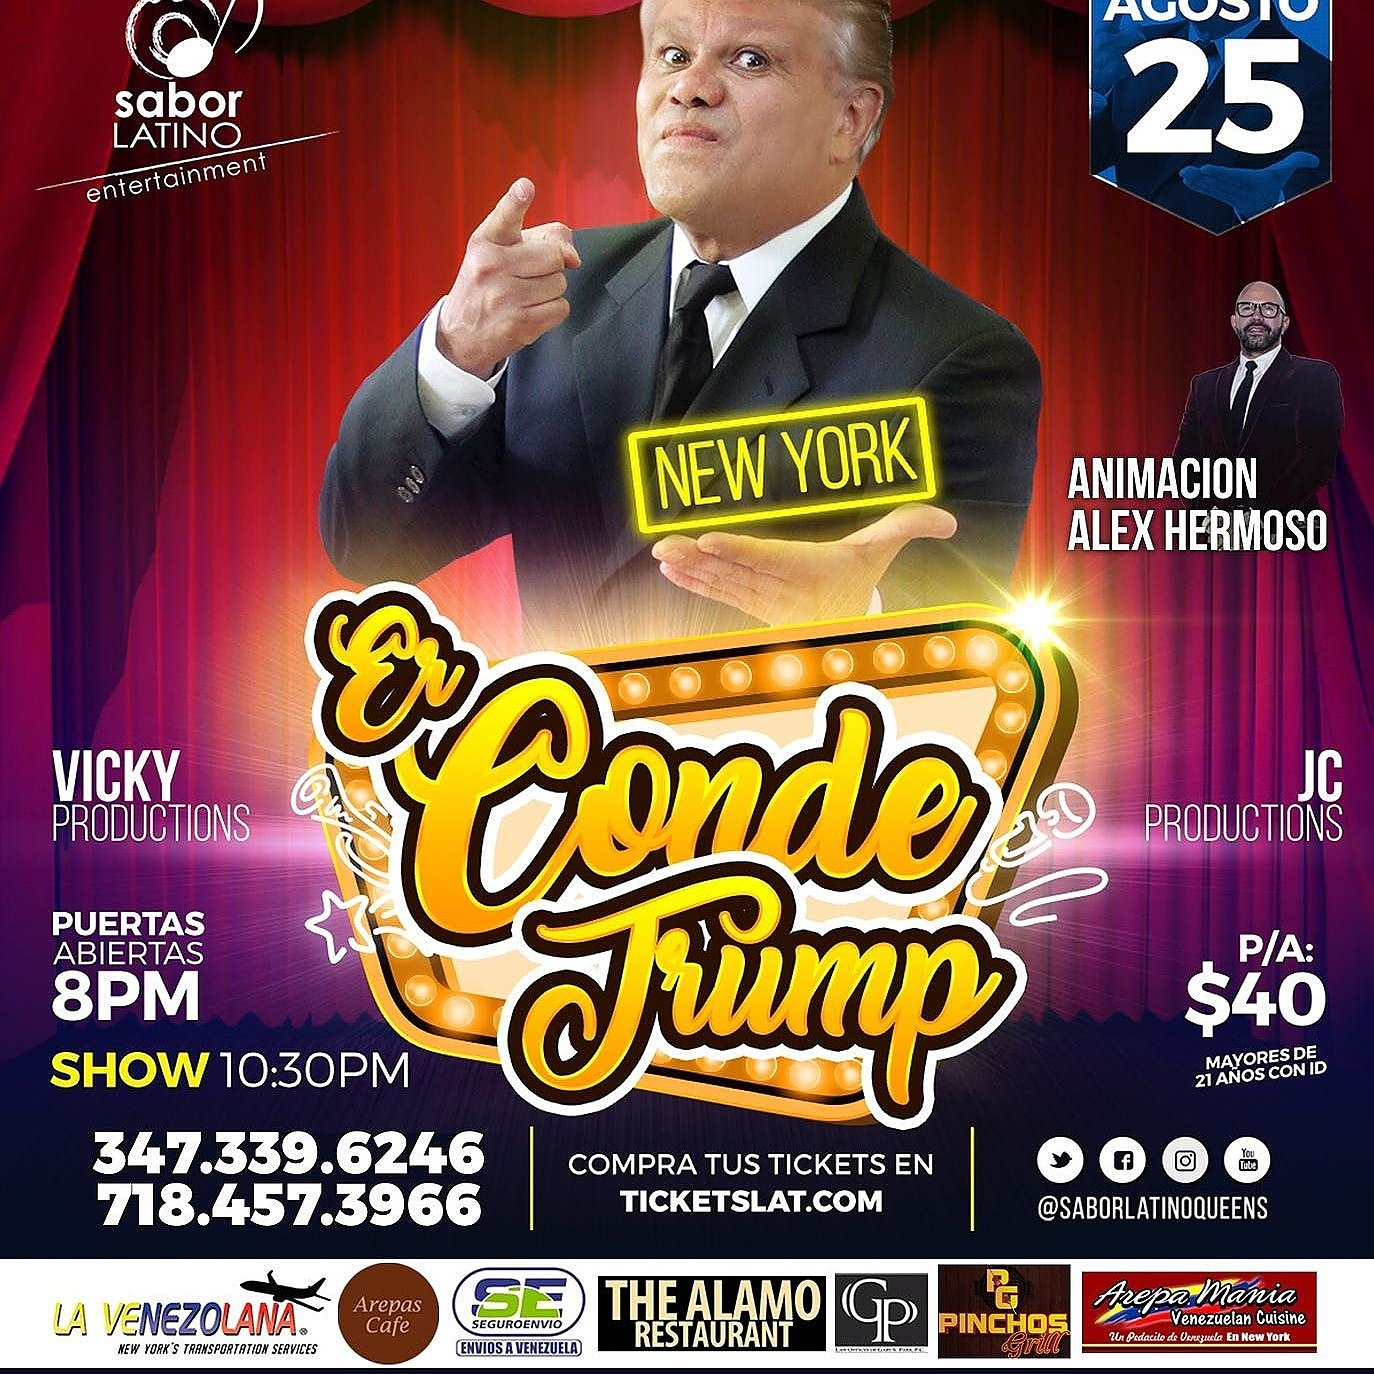 Jodedores! este 25/08 llega #NewYork #ErCondeTrump entradas en https://t.co/Fw0BXDfHNj 347.3396246 / 718.457.3966 https://t.co/E5CzMl506h